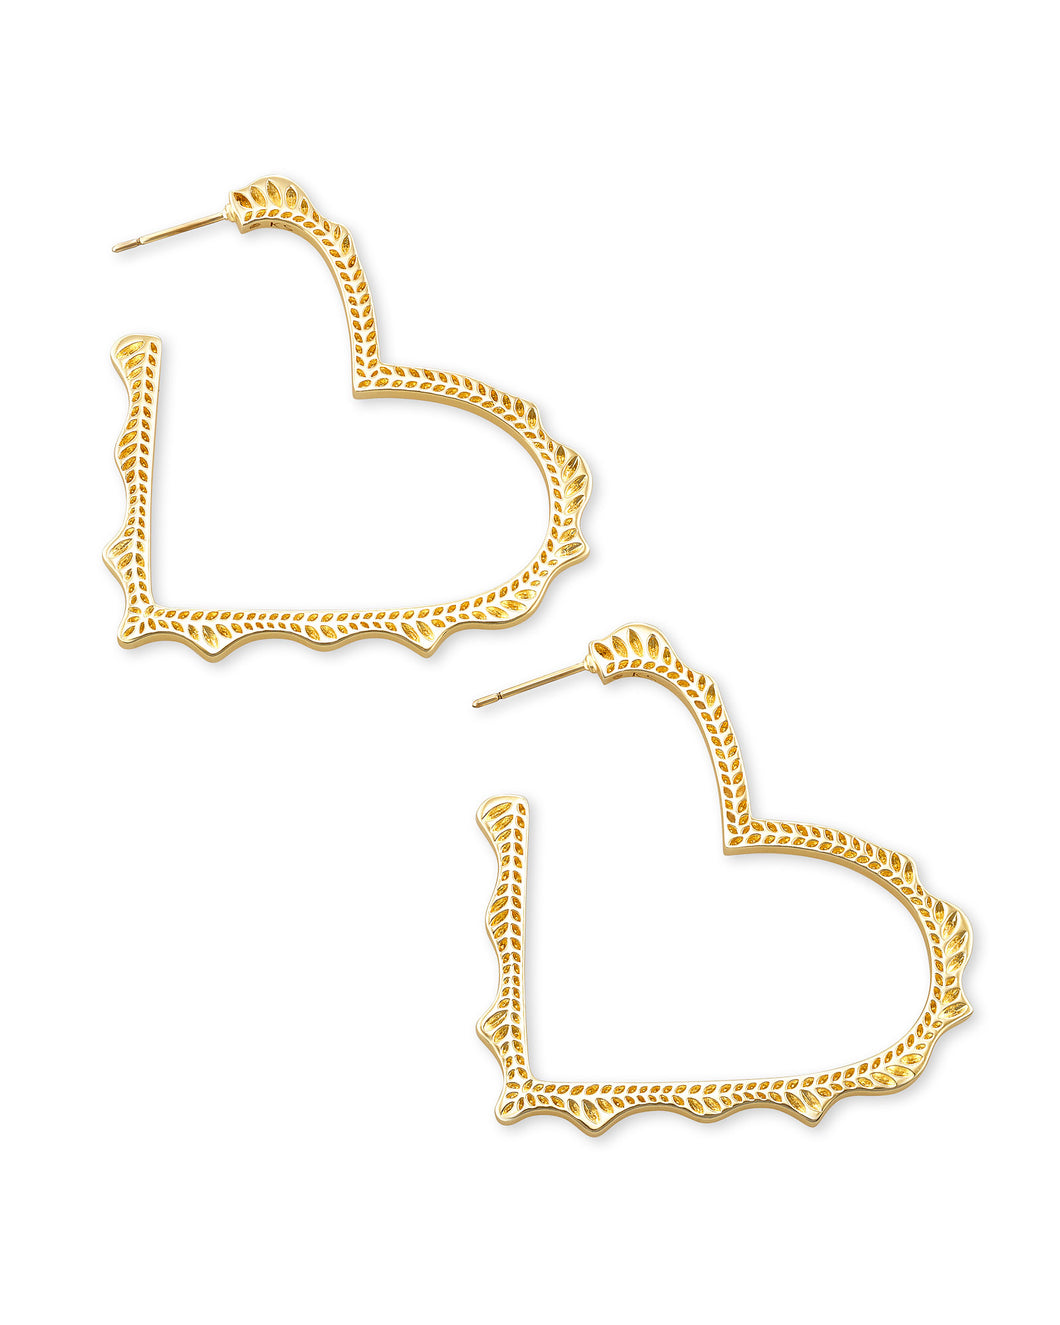 Kendra Scott Sophee Heart Hoop Earring in Gold